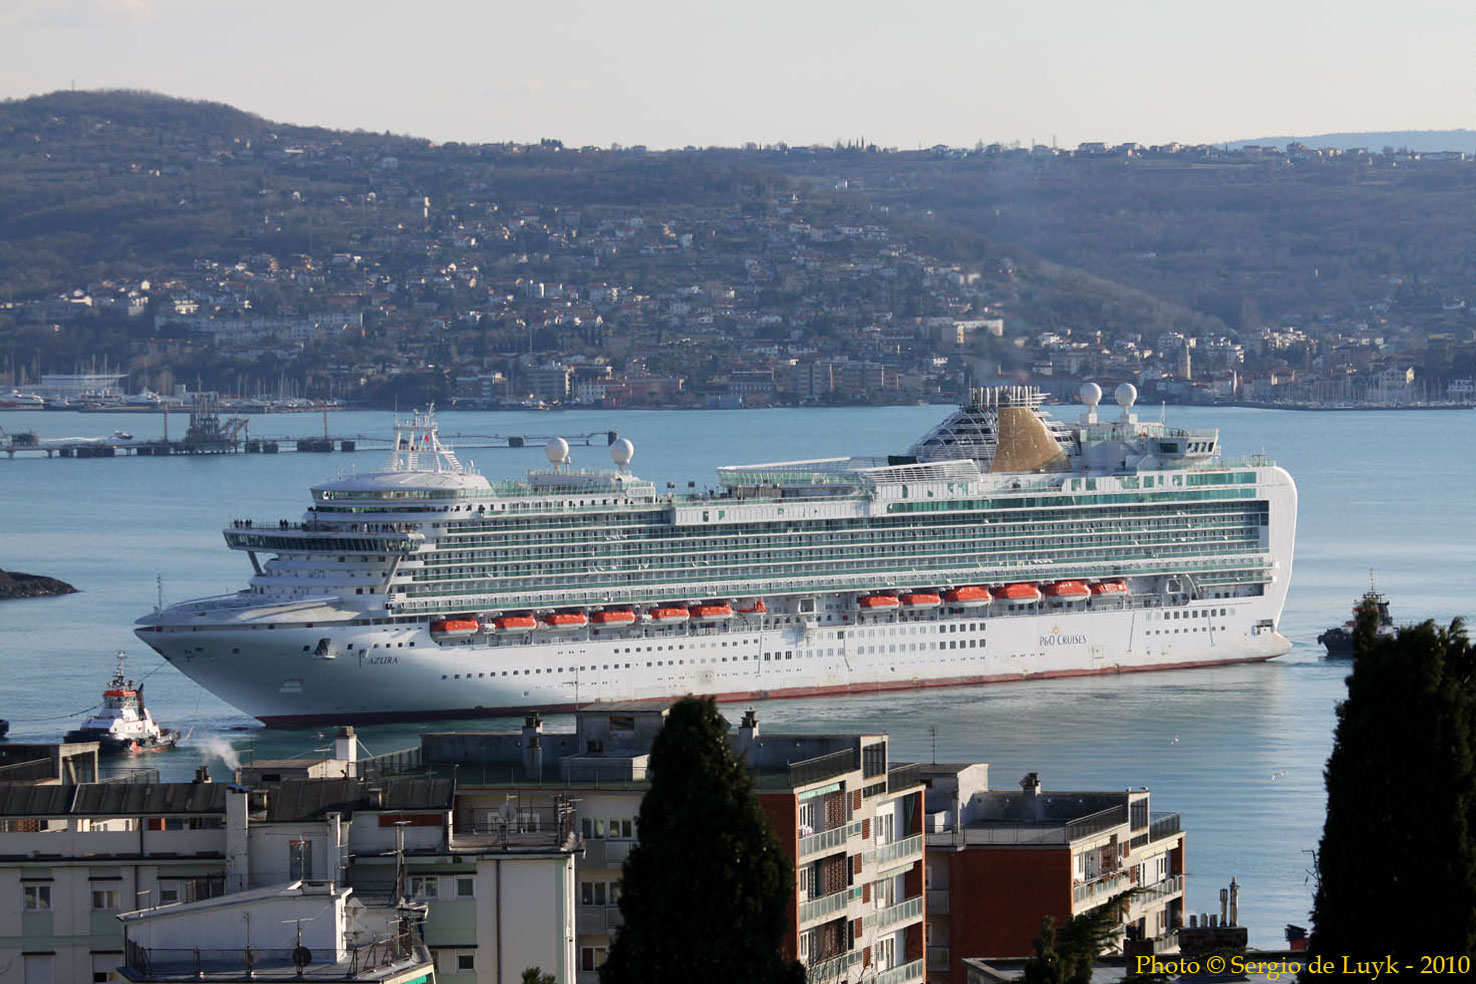 Azura+cruise+ship+photos